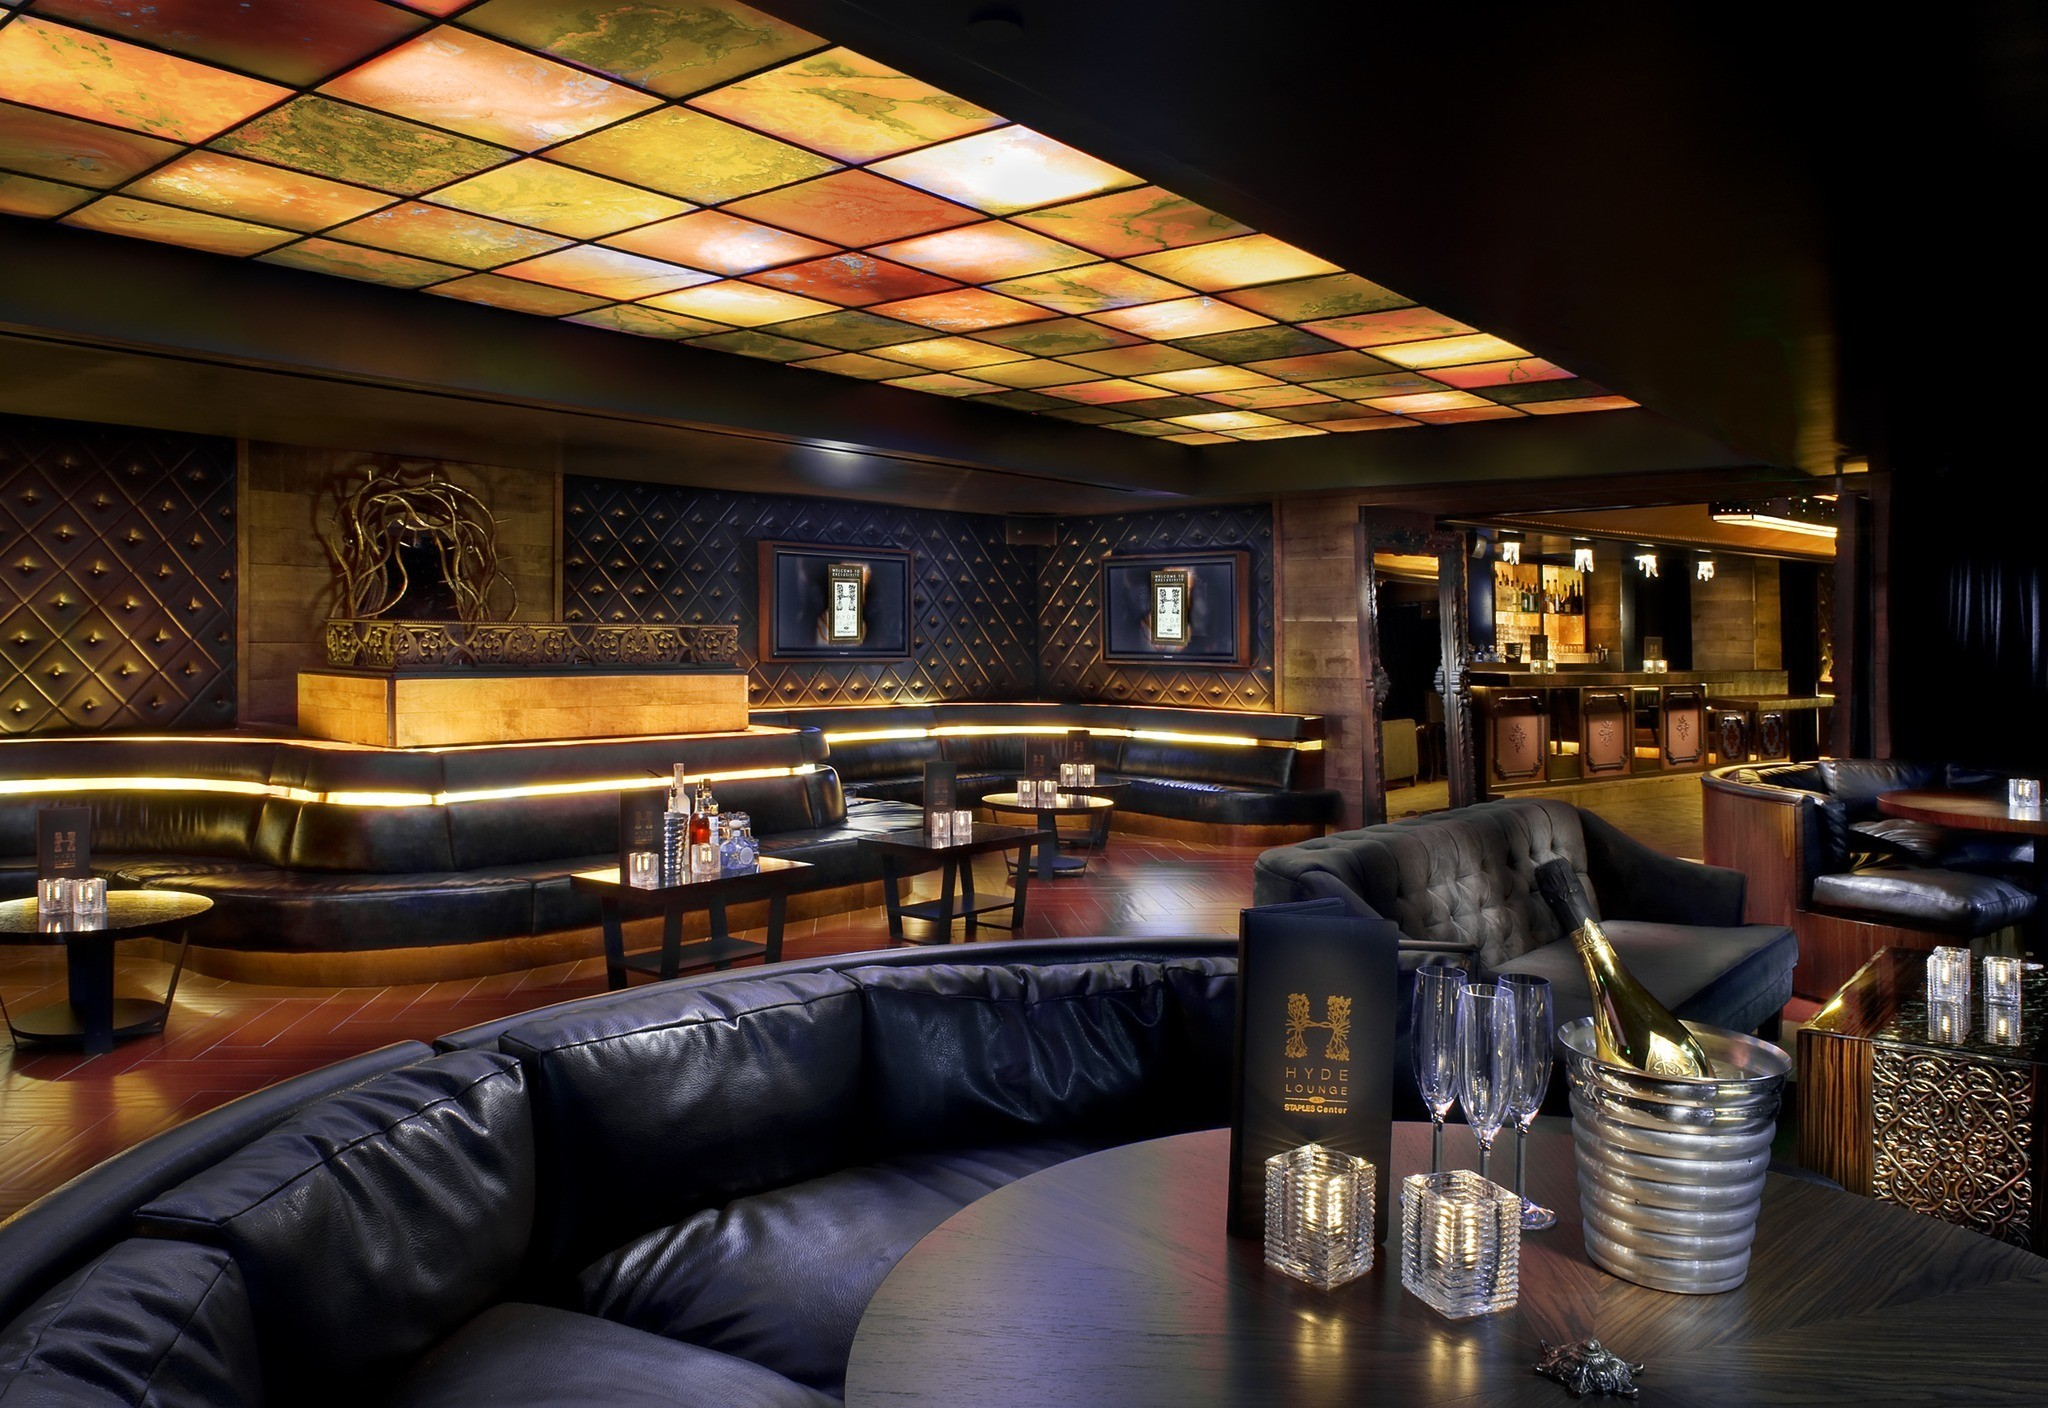 Los Angeles Nightlife 6 Night Clubs To See And Be Seen